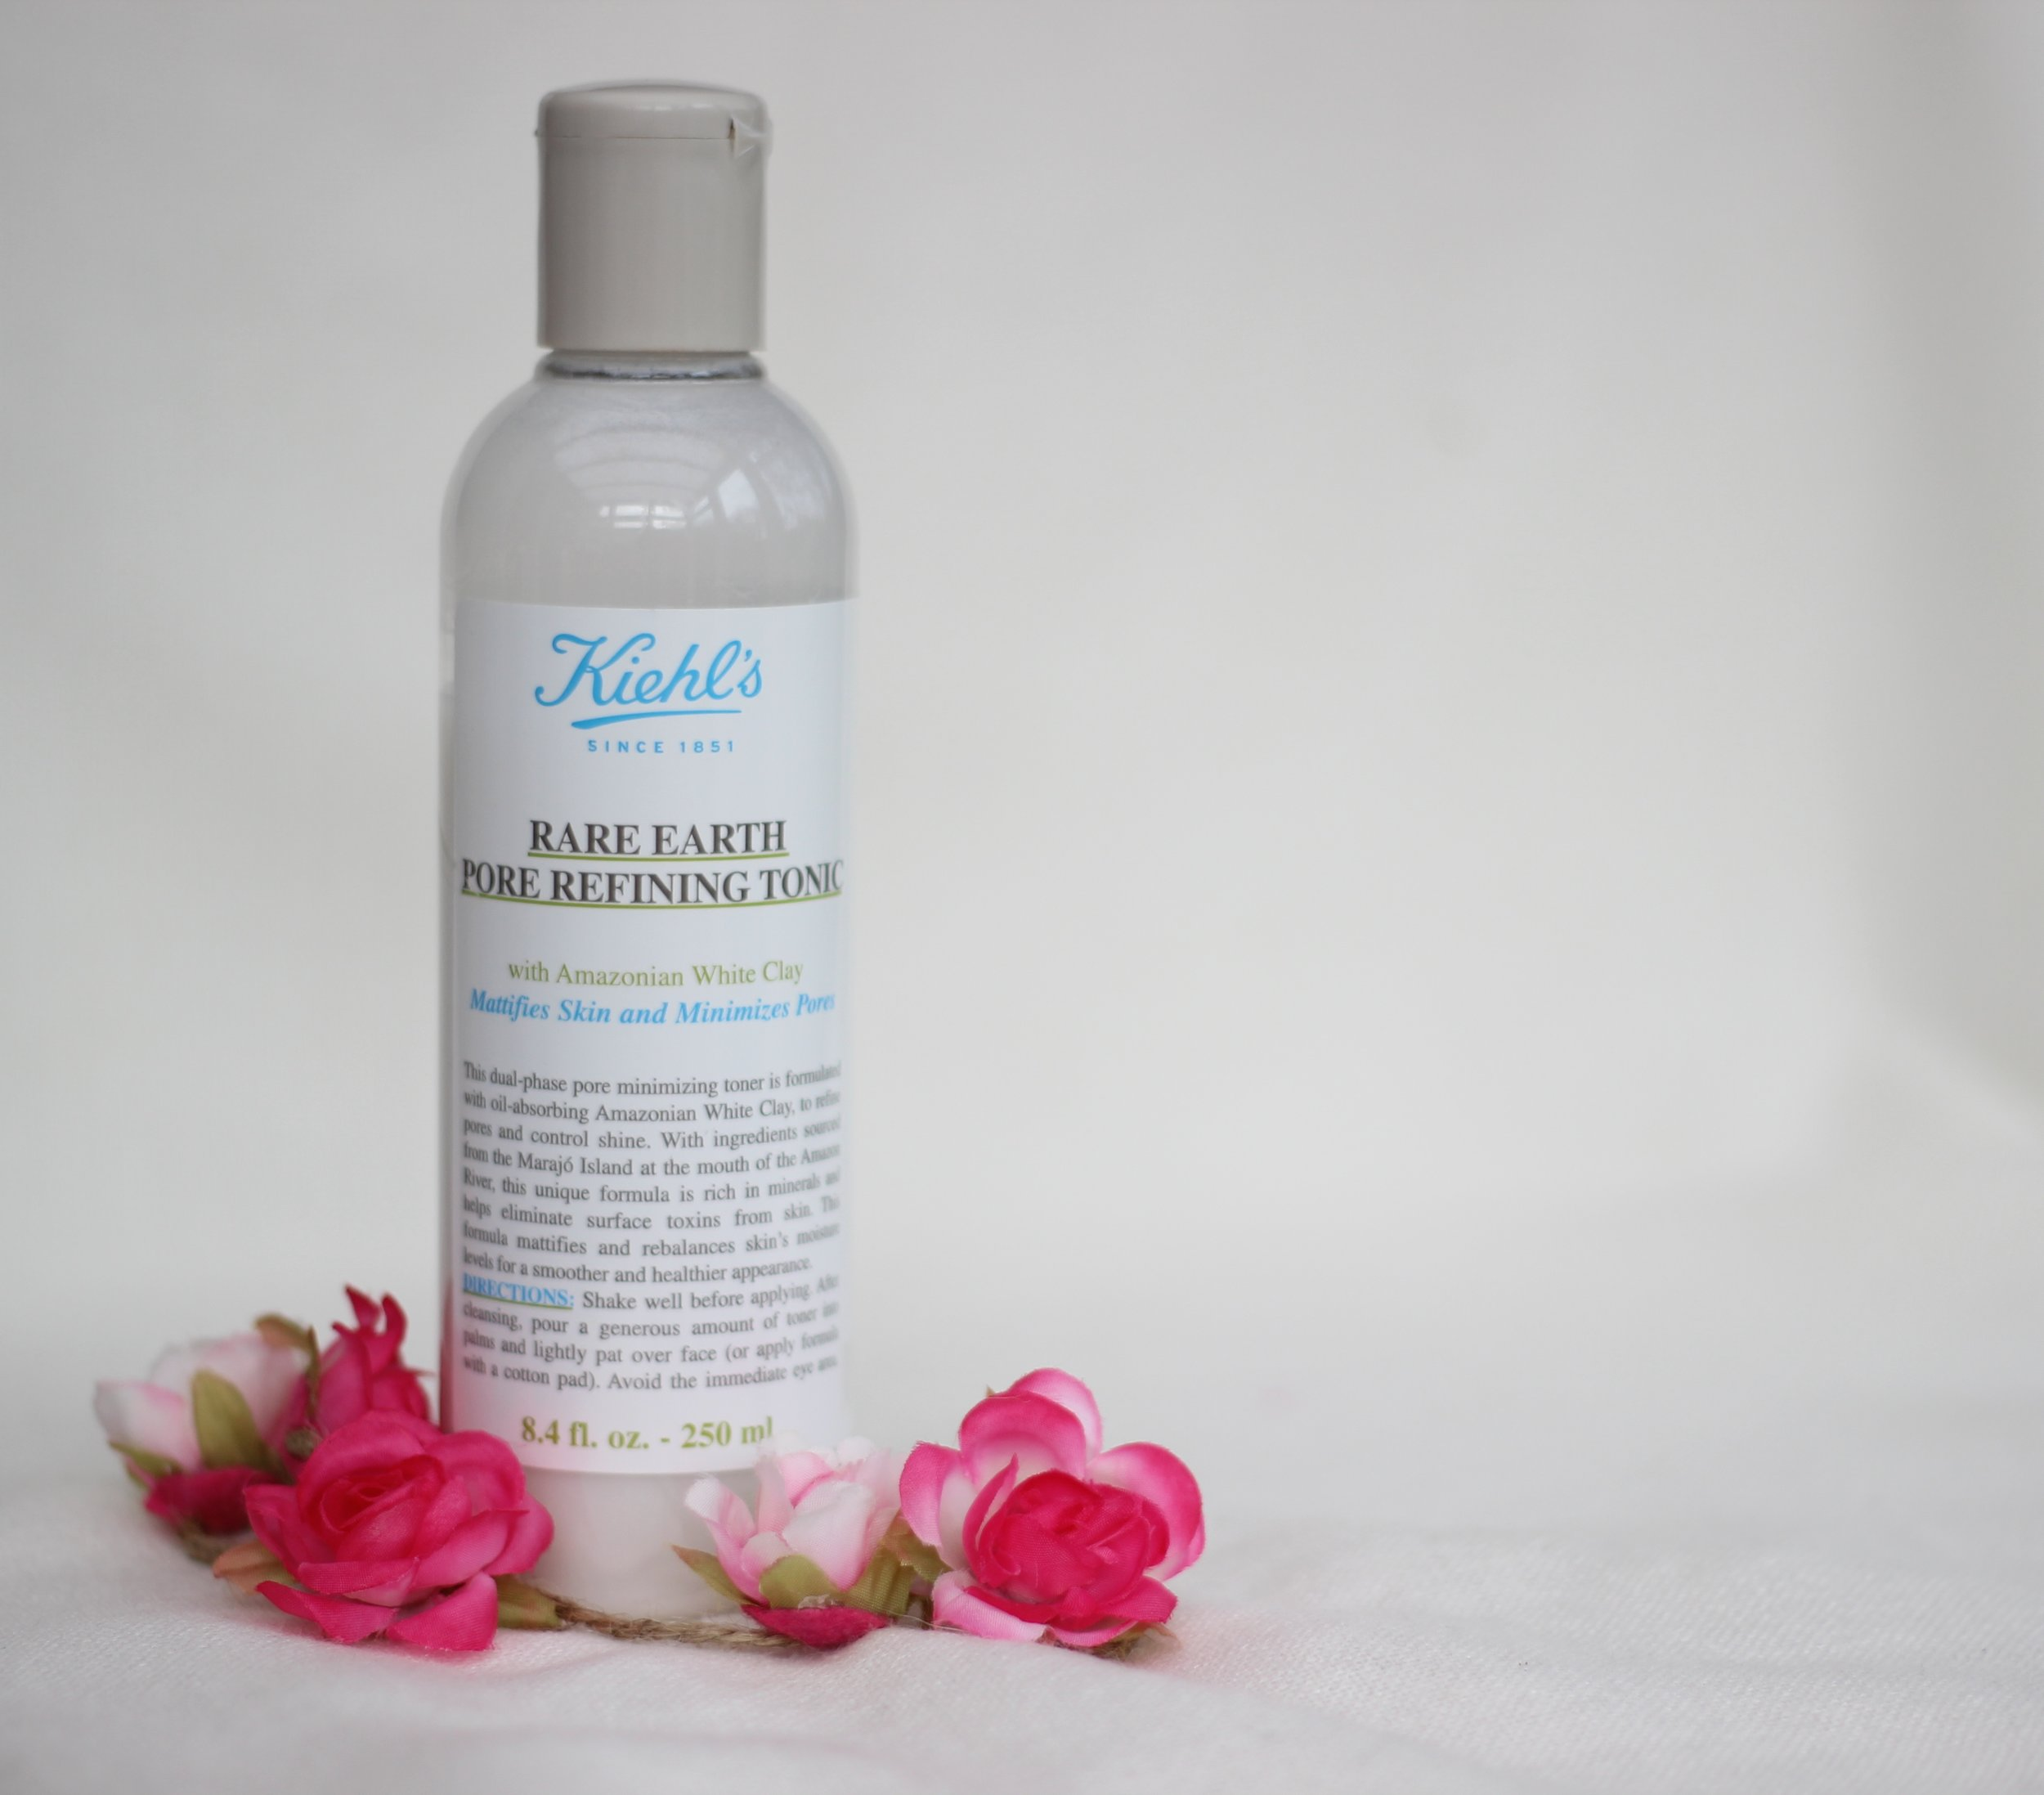 Kiehl's Rare Earth Pore Refining Tonic